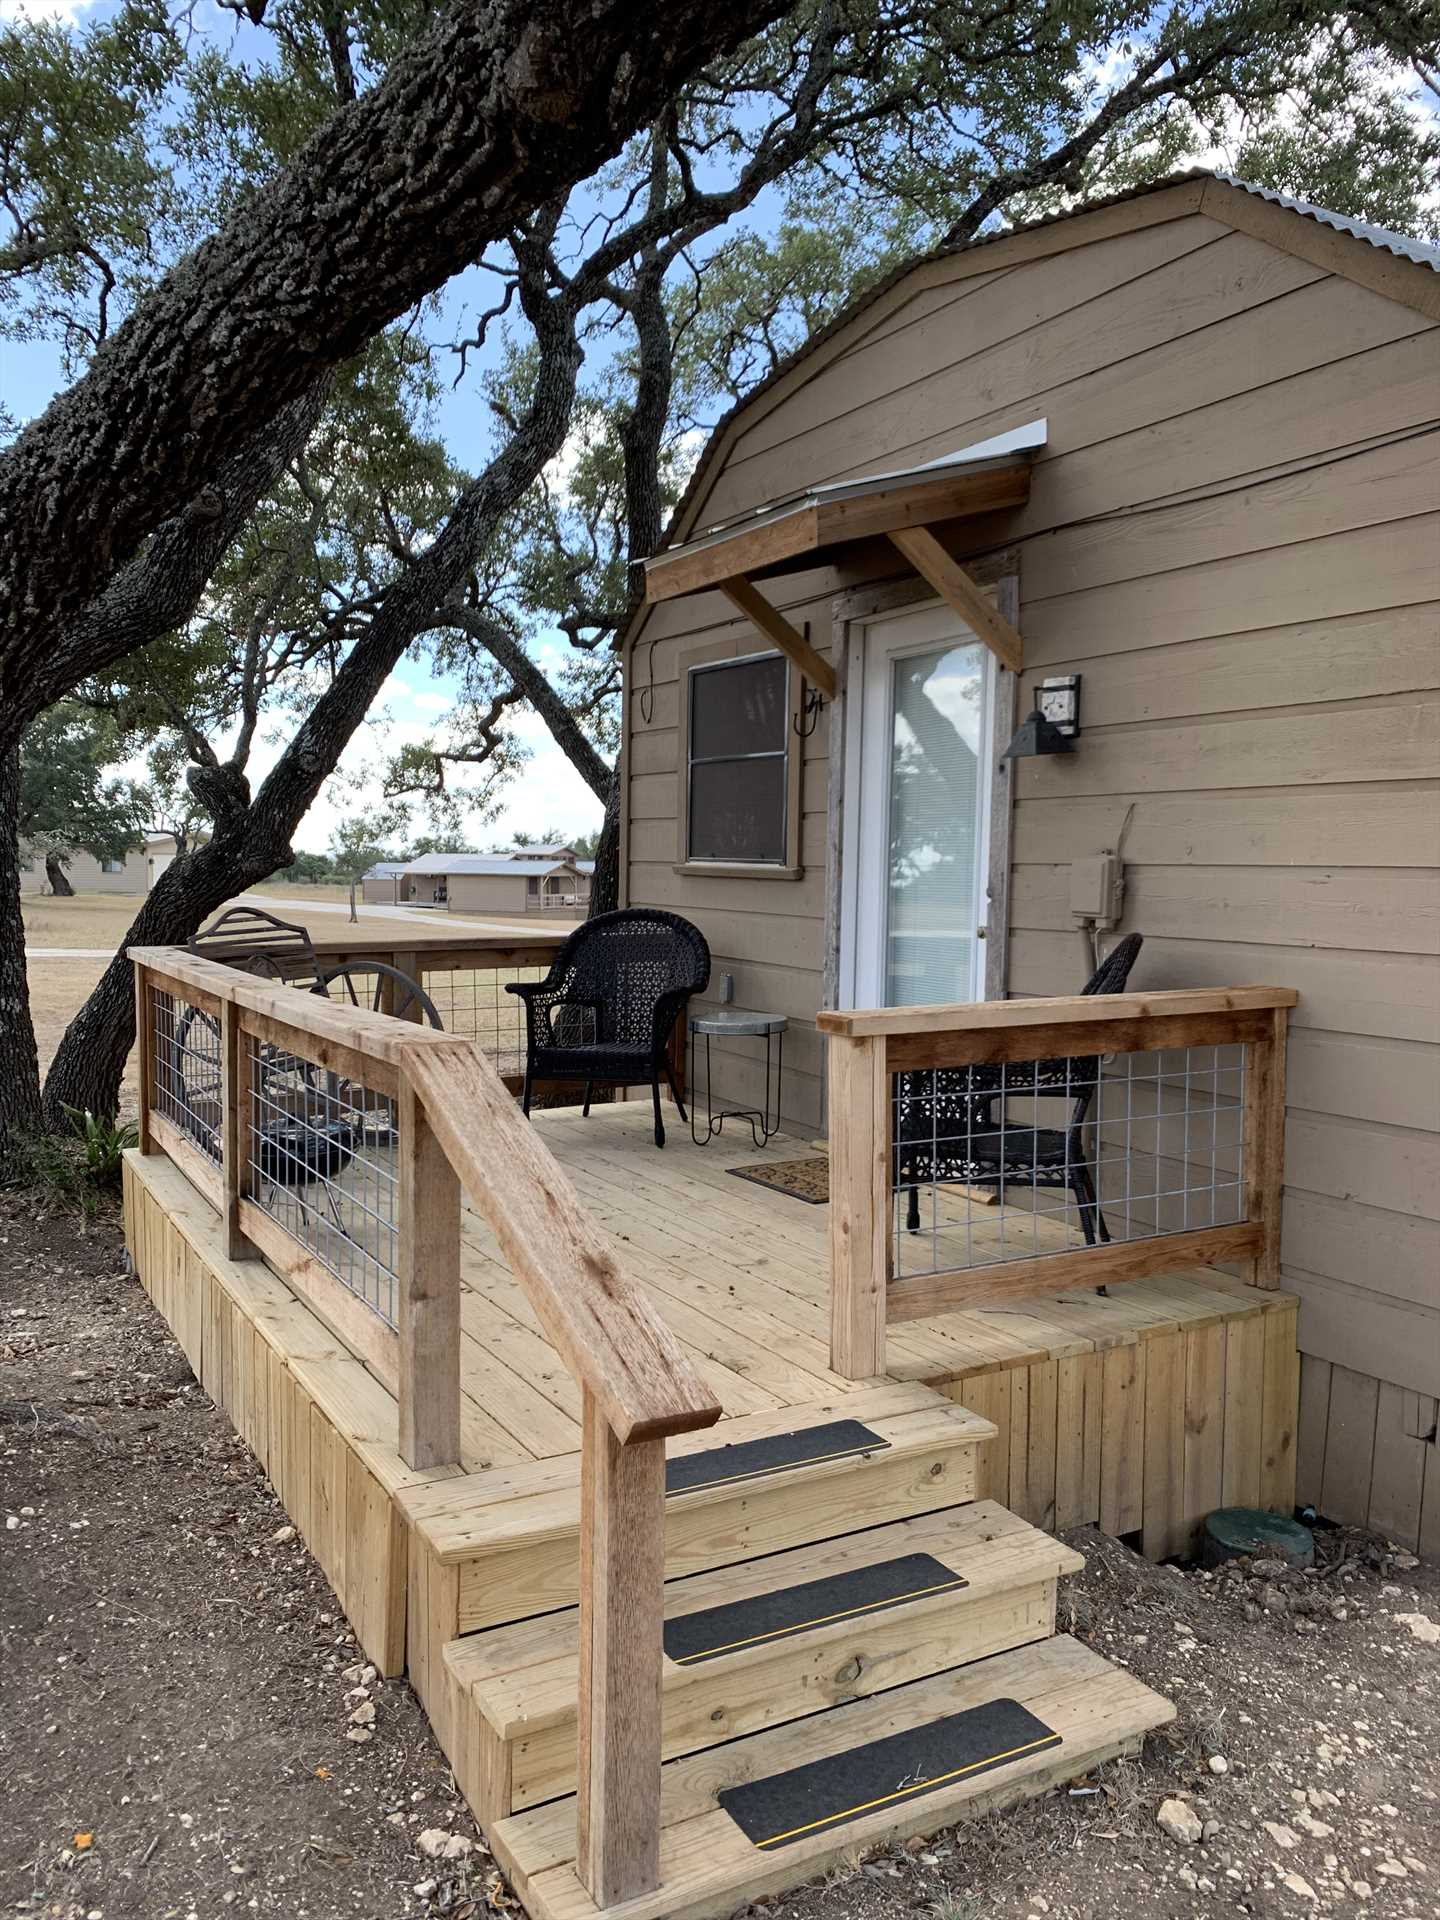 The cozy deck is shaded most of the day, and offers a peaceful spot for wildlife-watching and stargazing!